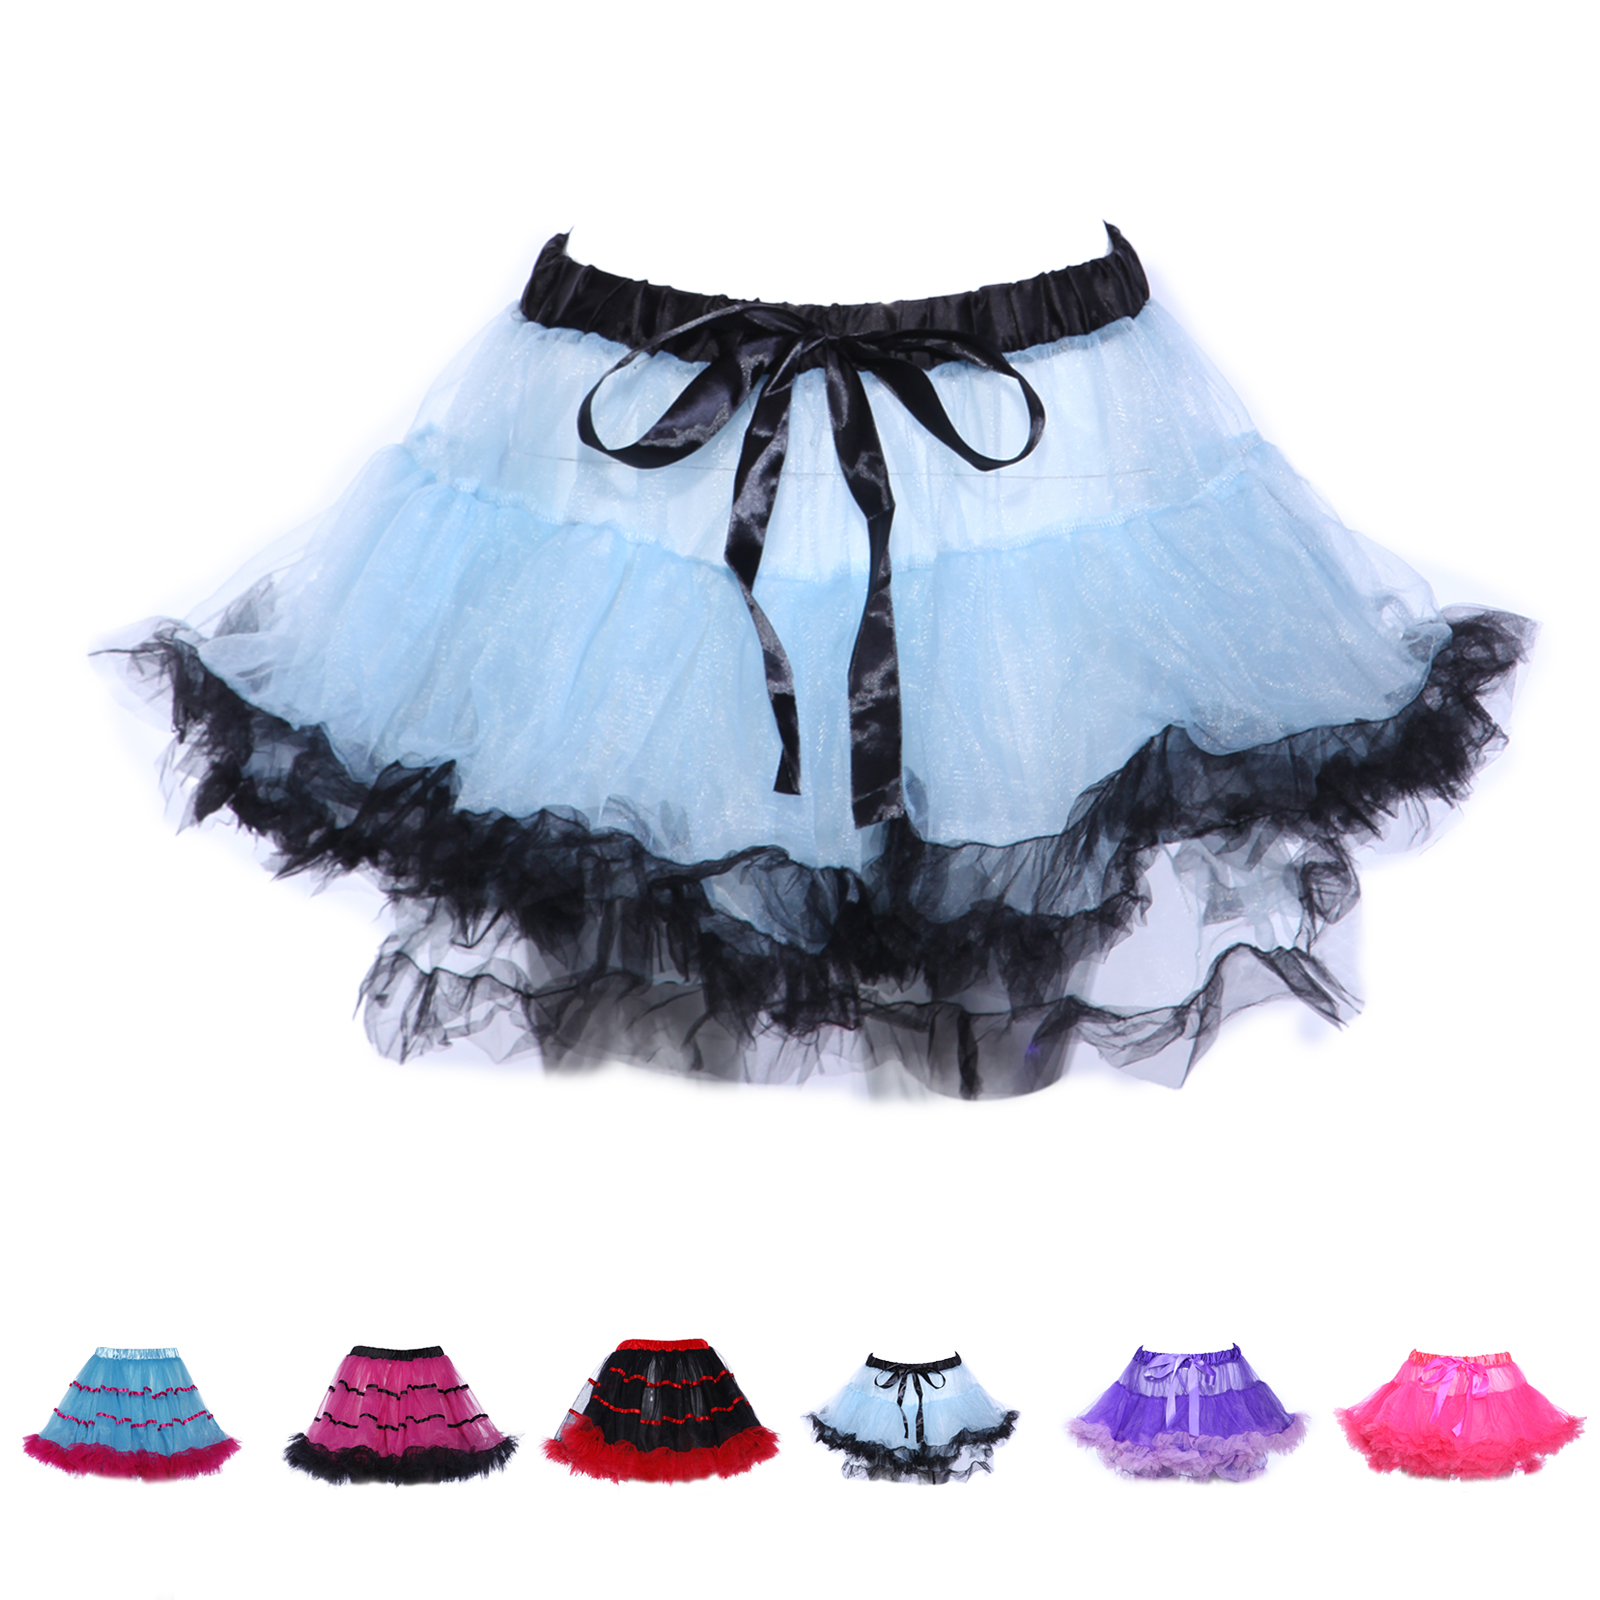 tutu t t ballettrock rock pettiskirt petticoat chiffon t llrock karneval ebay. Black Bedroom Furniture Sets. Home Design Ideas